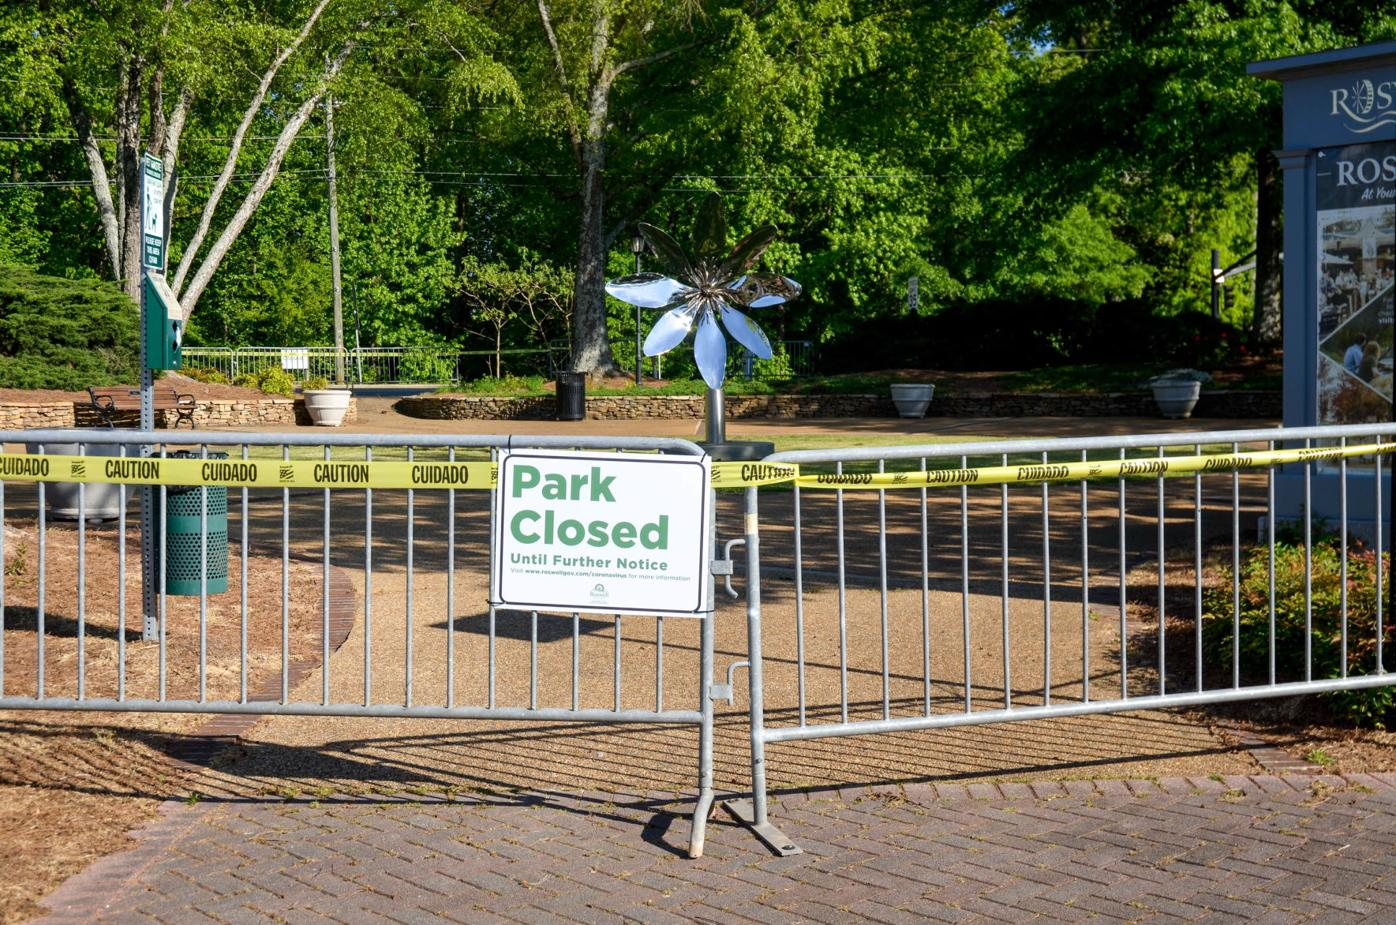 Heart of Roswell Park